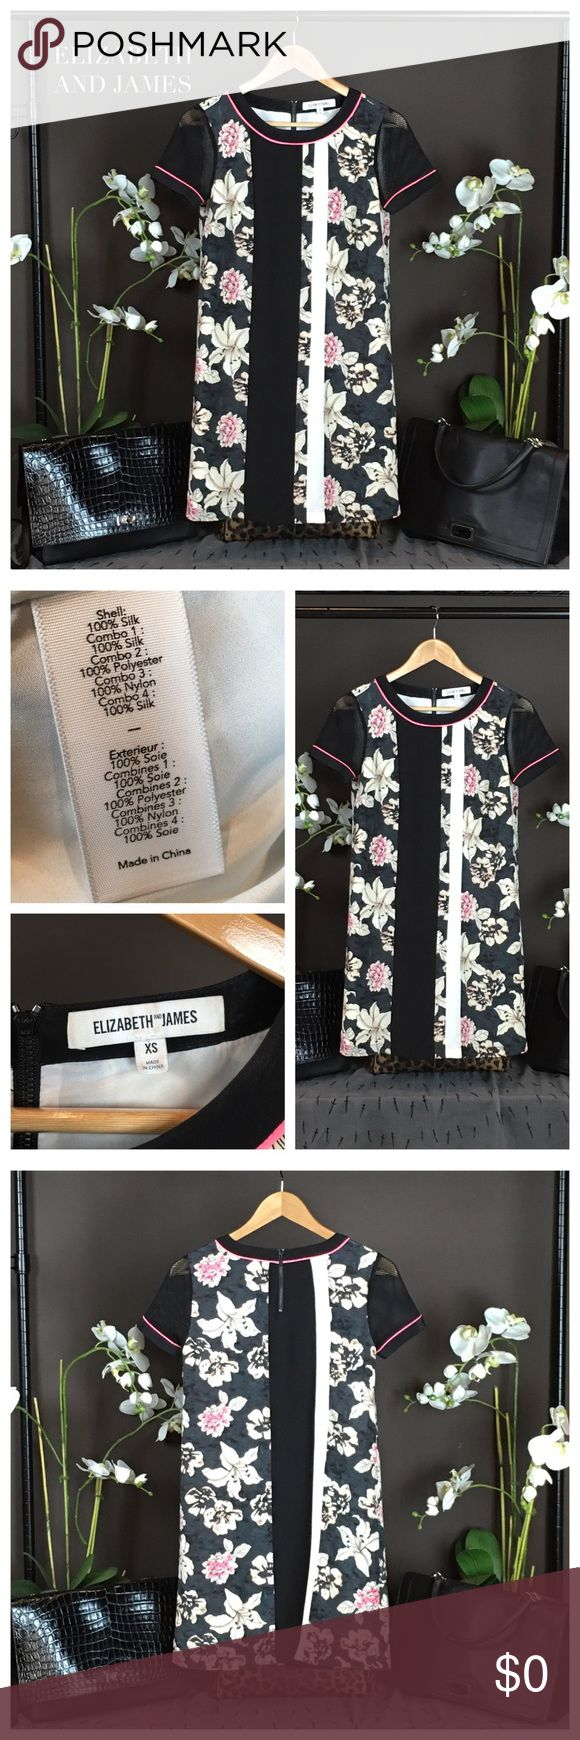 """Elizabeth and James Dress Creating a strong contrast with striking visuals, this dress from Elizabeth and James features a multi-colored floral centre with black mesh sleeves and pink trims. Material 1: 100% Silk; Mat 2: 100% Polyester; Mat 3: 100% Nylon; Mat 4: 100% Silk. Size XS Approx. Measurements: 32-33"""", Length; 35.5"""" Bust: 34"""", Waist 32"""" Hip: 38"""", Length: 34"""". SOLD OUT! Condition: Excellent. Pair w skinny jeans & boots Elizabeth and James Dresses"""